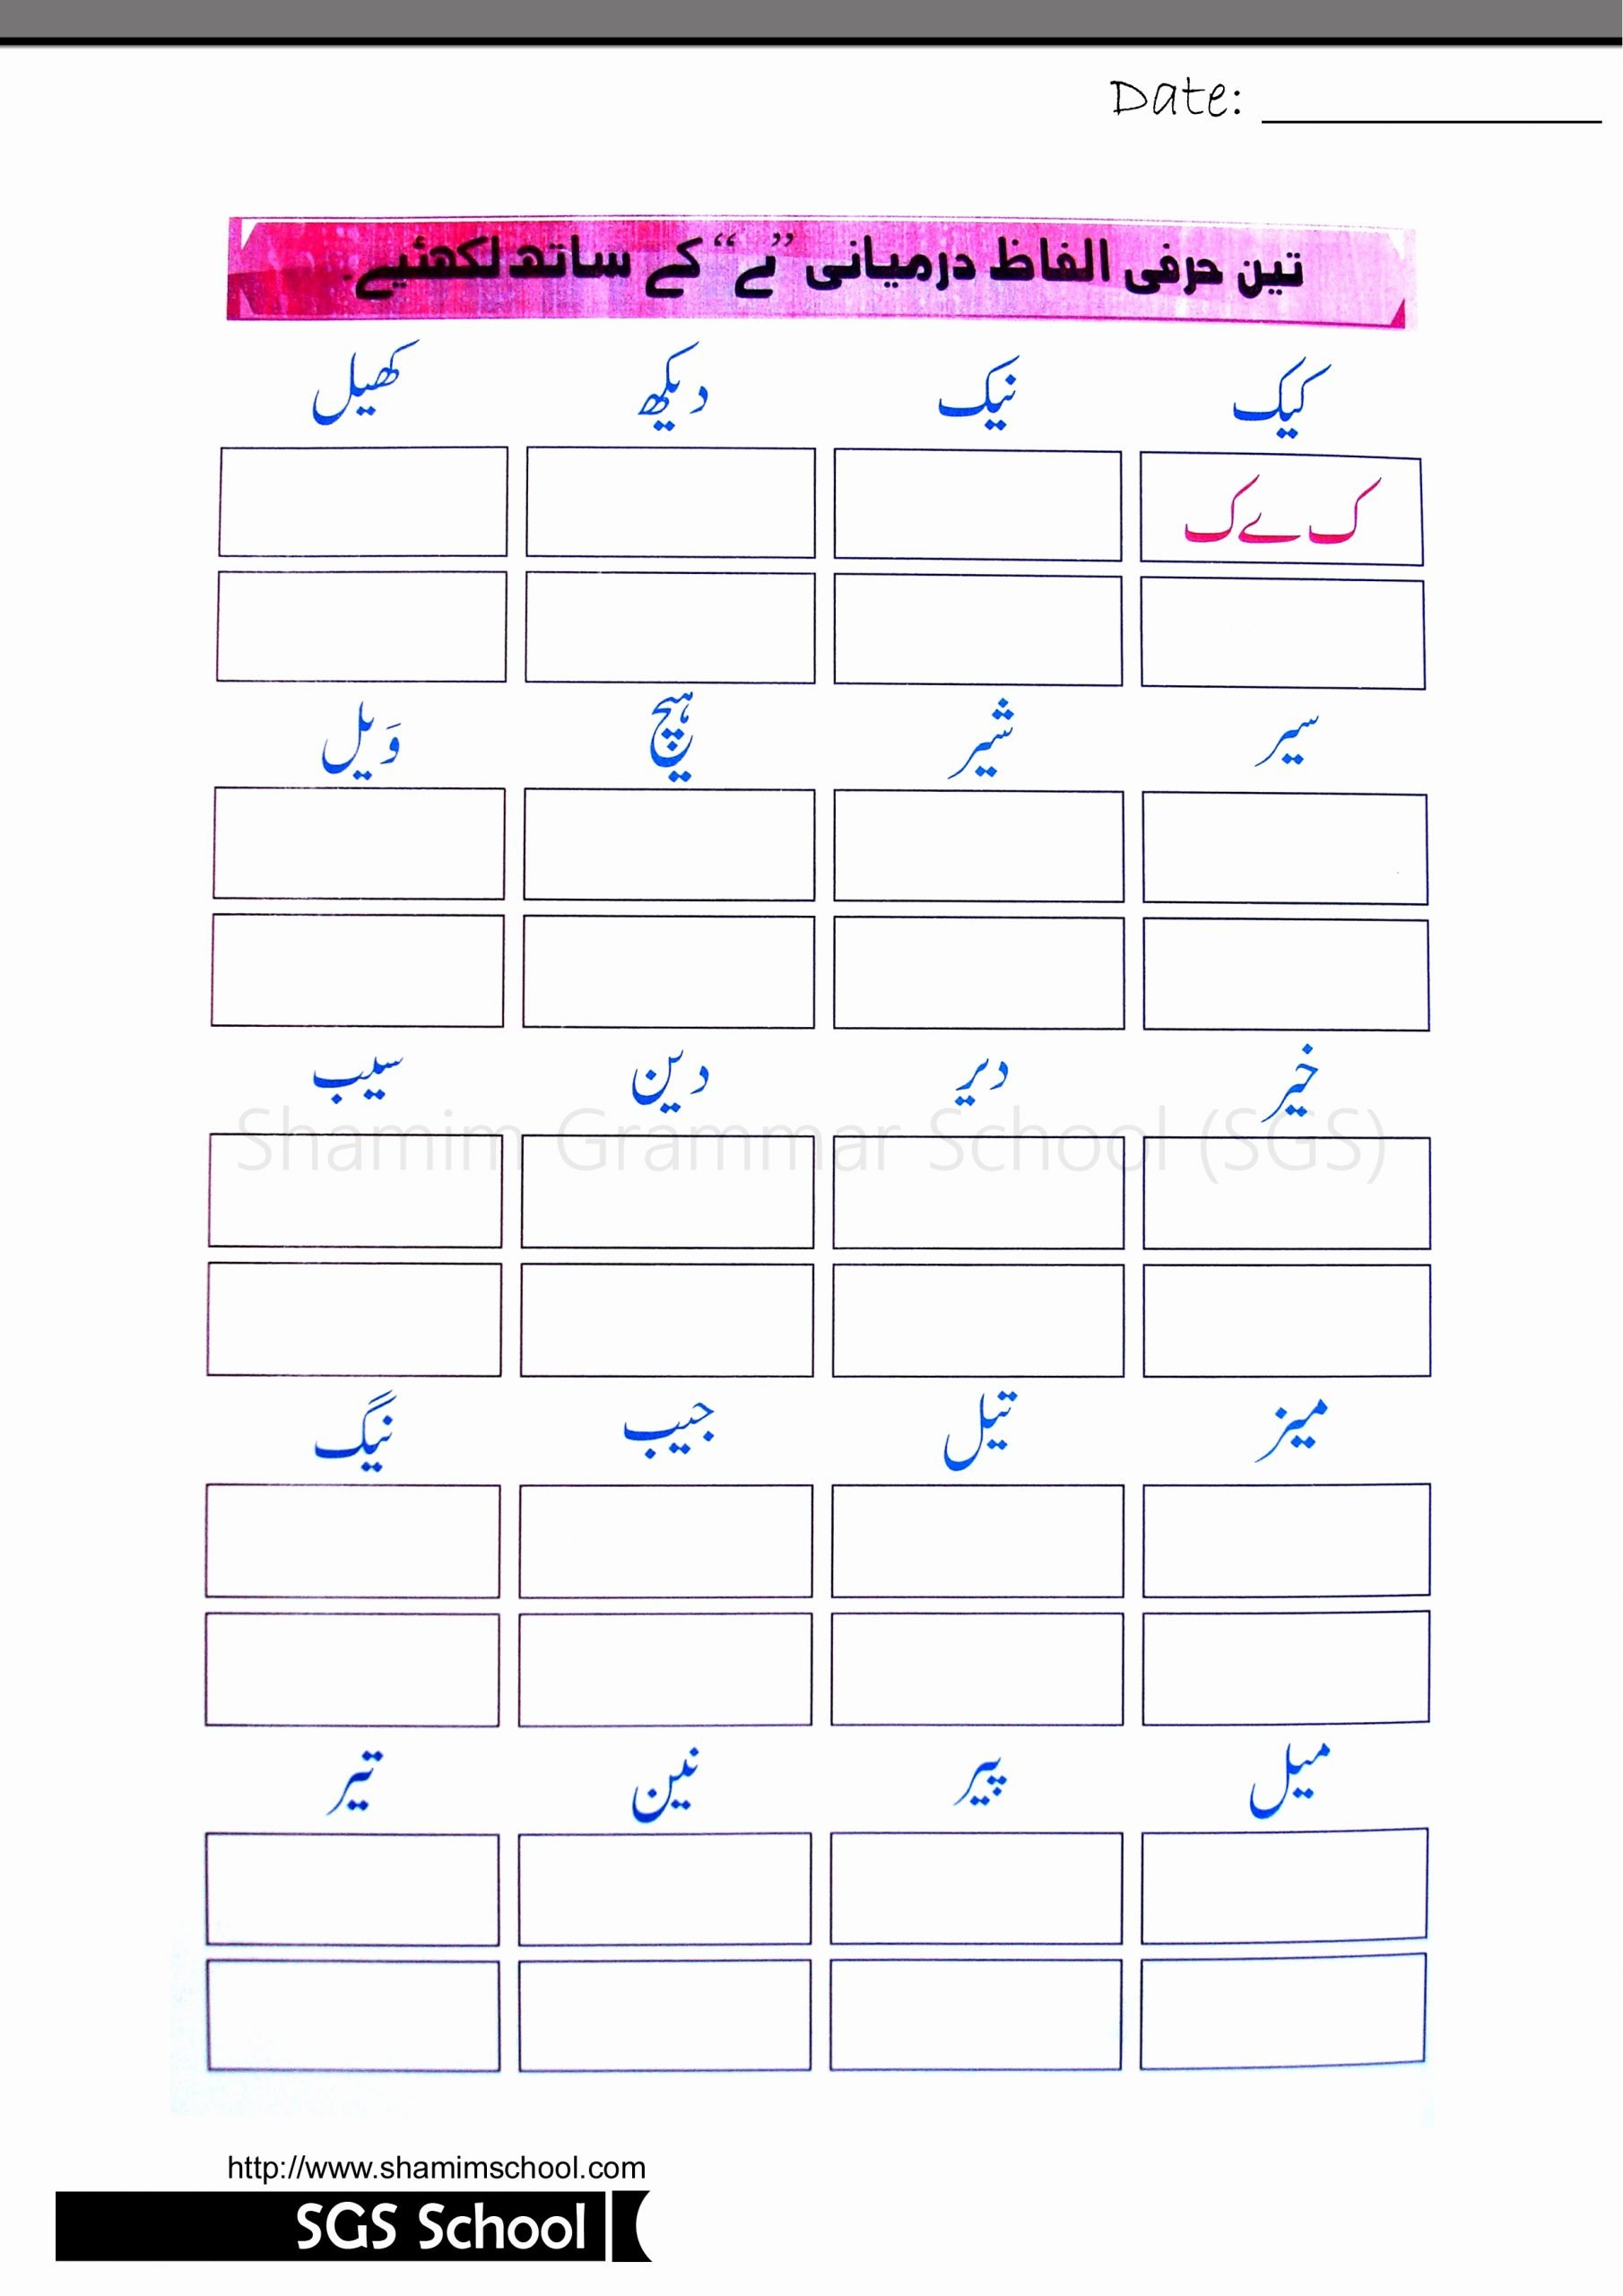 Download Urdu Worksheets for Preschoolers Lovely Urdu Worksheets for Montessori